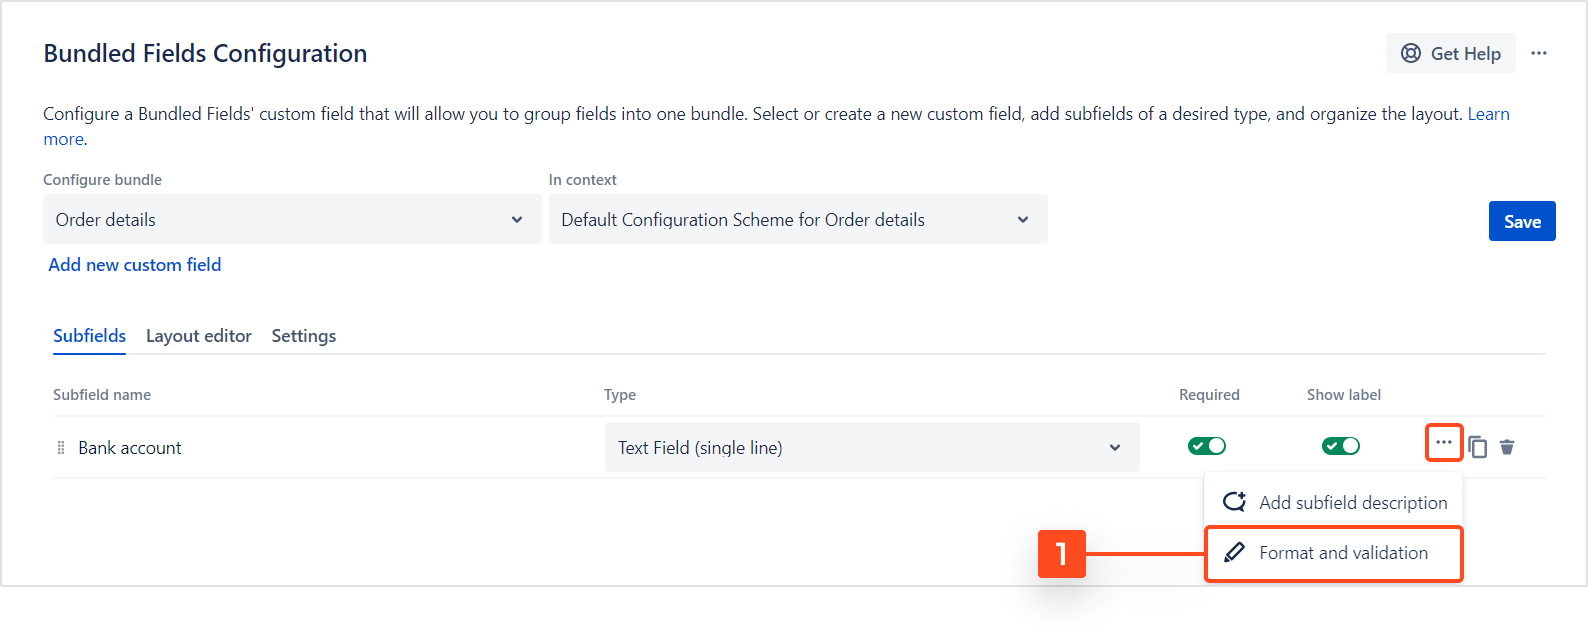 Bundled Fields Configuration - Format and Validation